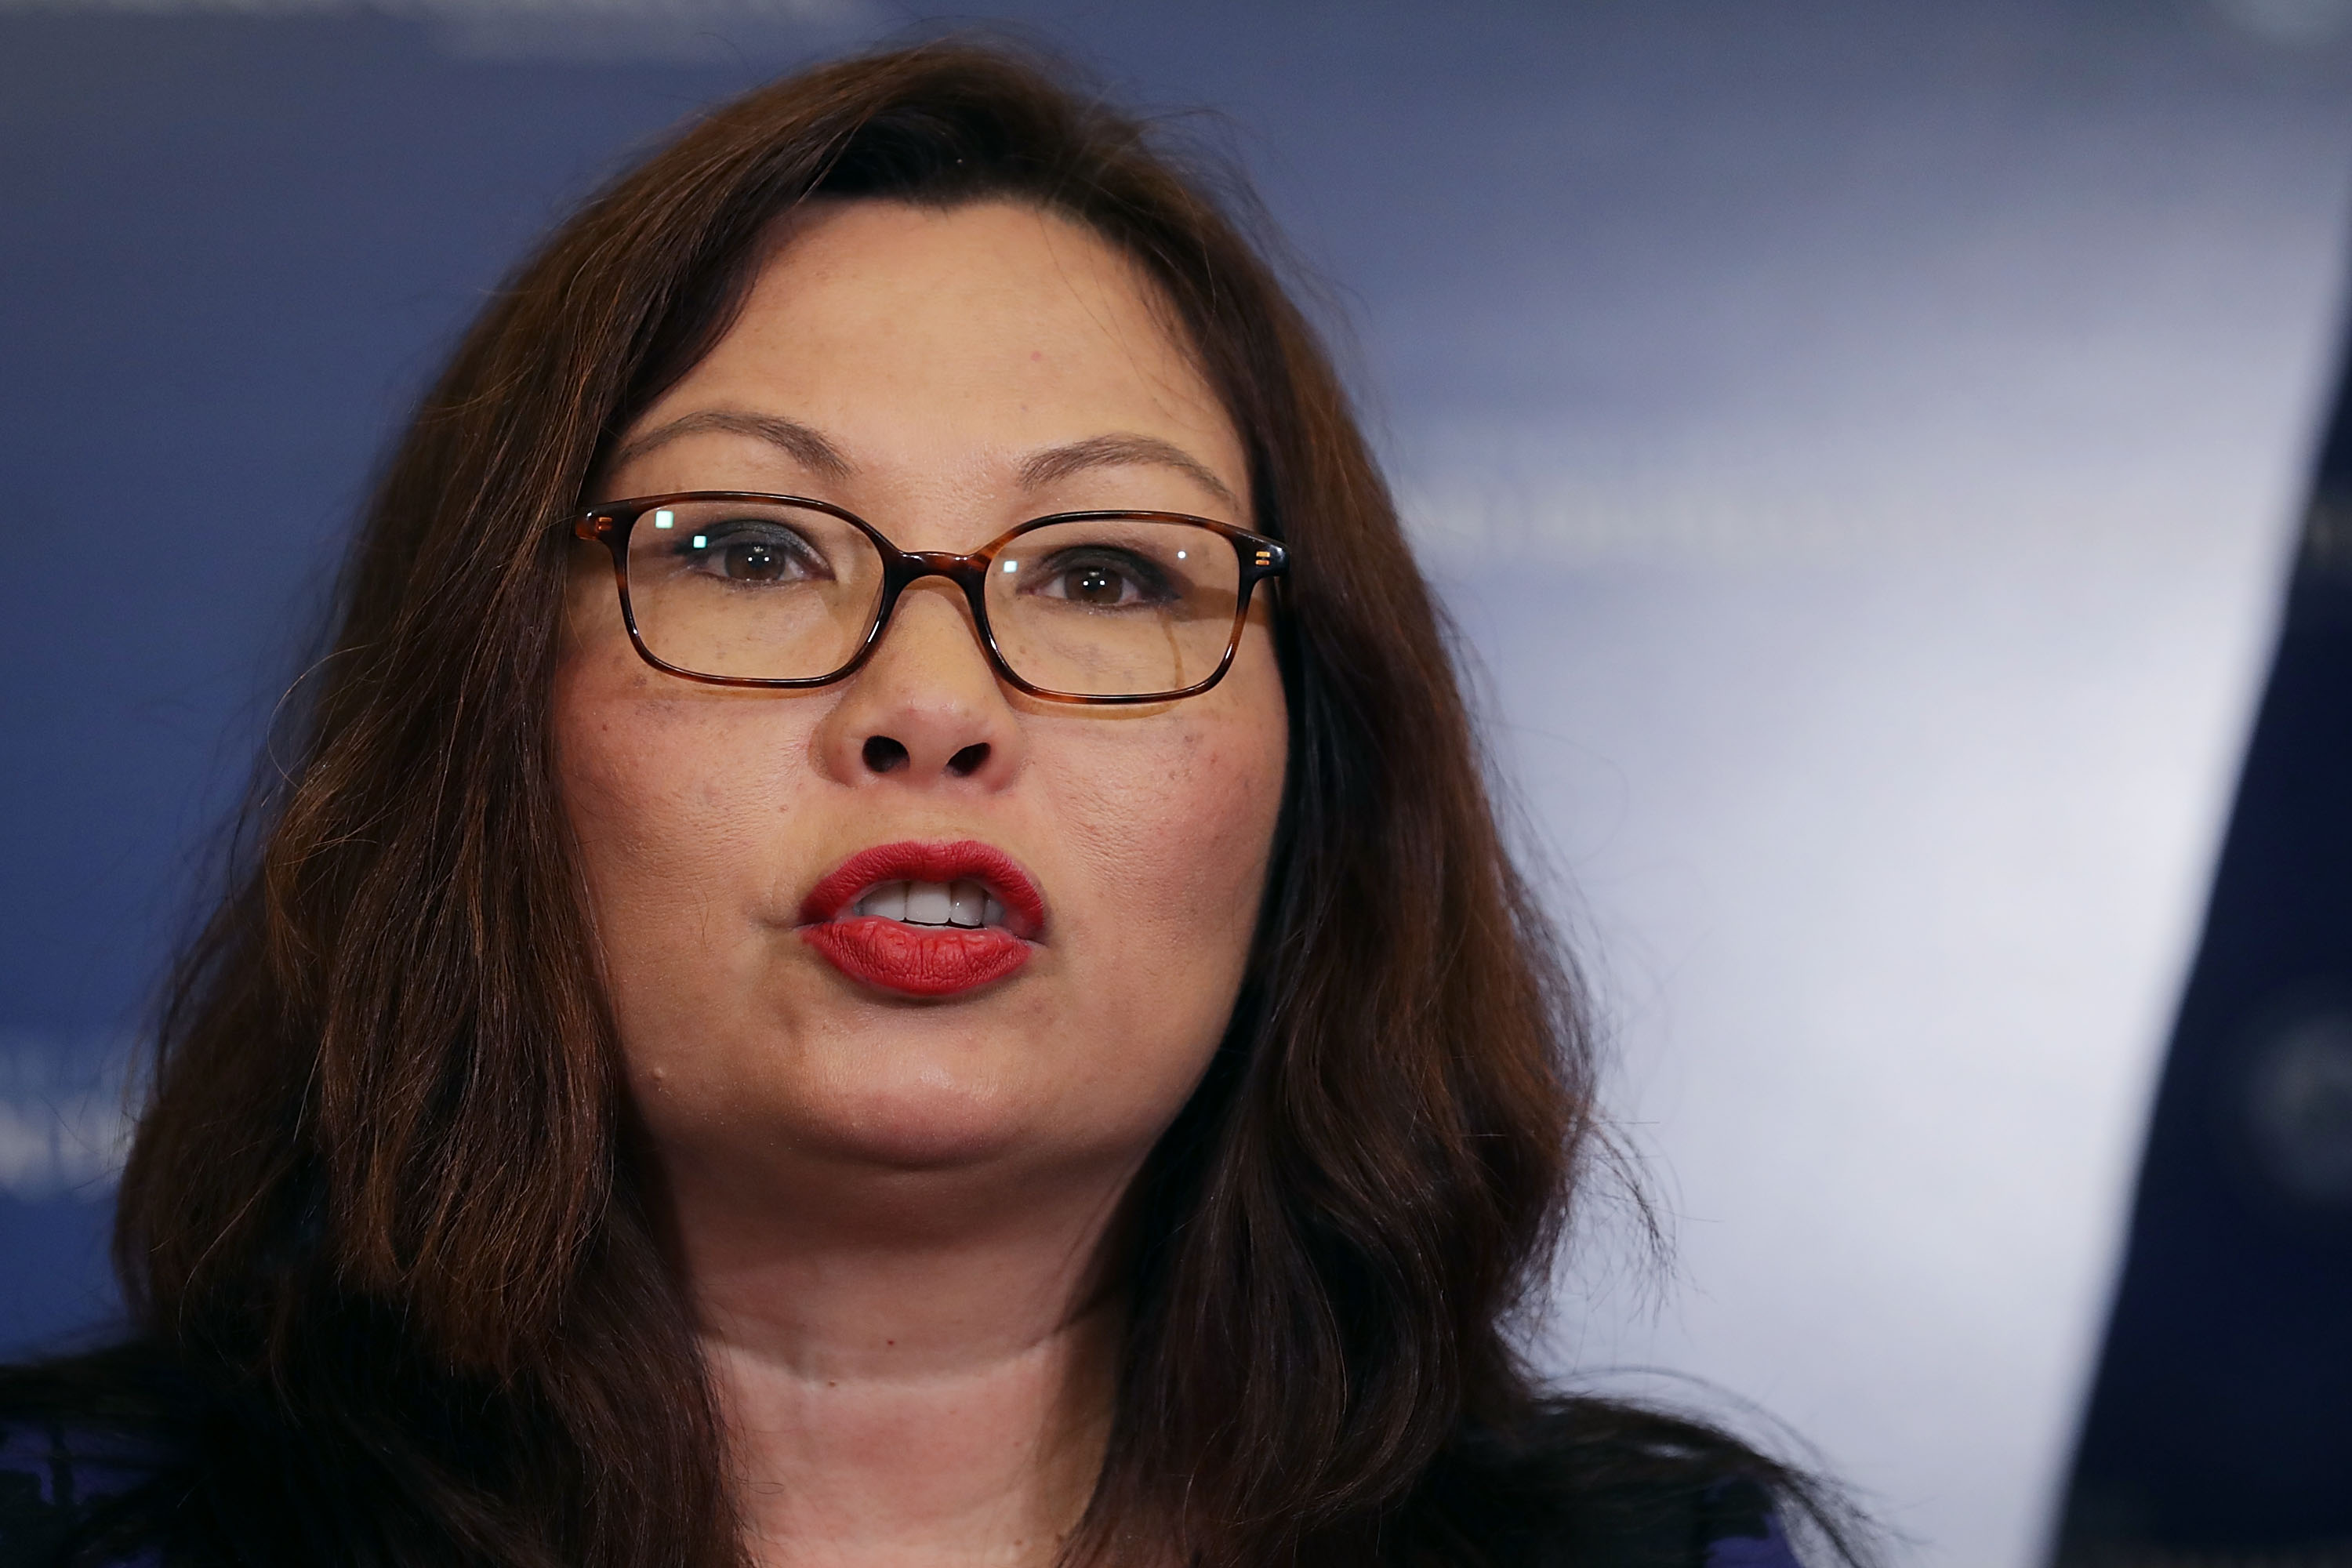 Illinois Sen. Tammy Duckworth says Trump's 'priorities are all wrong'